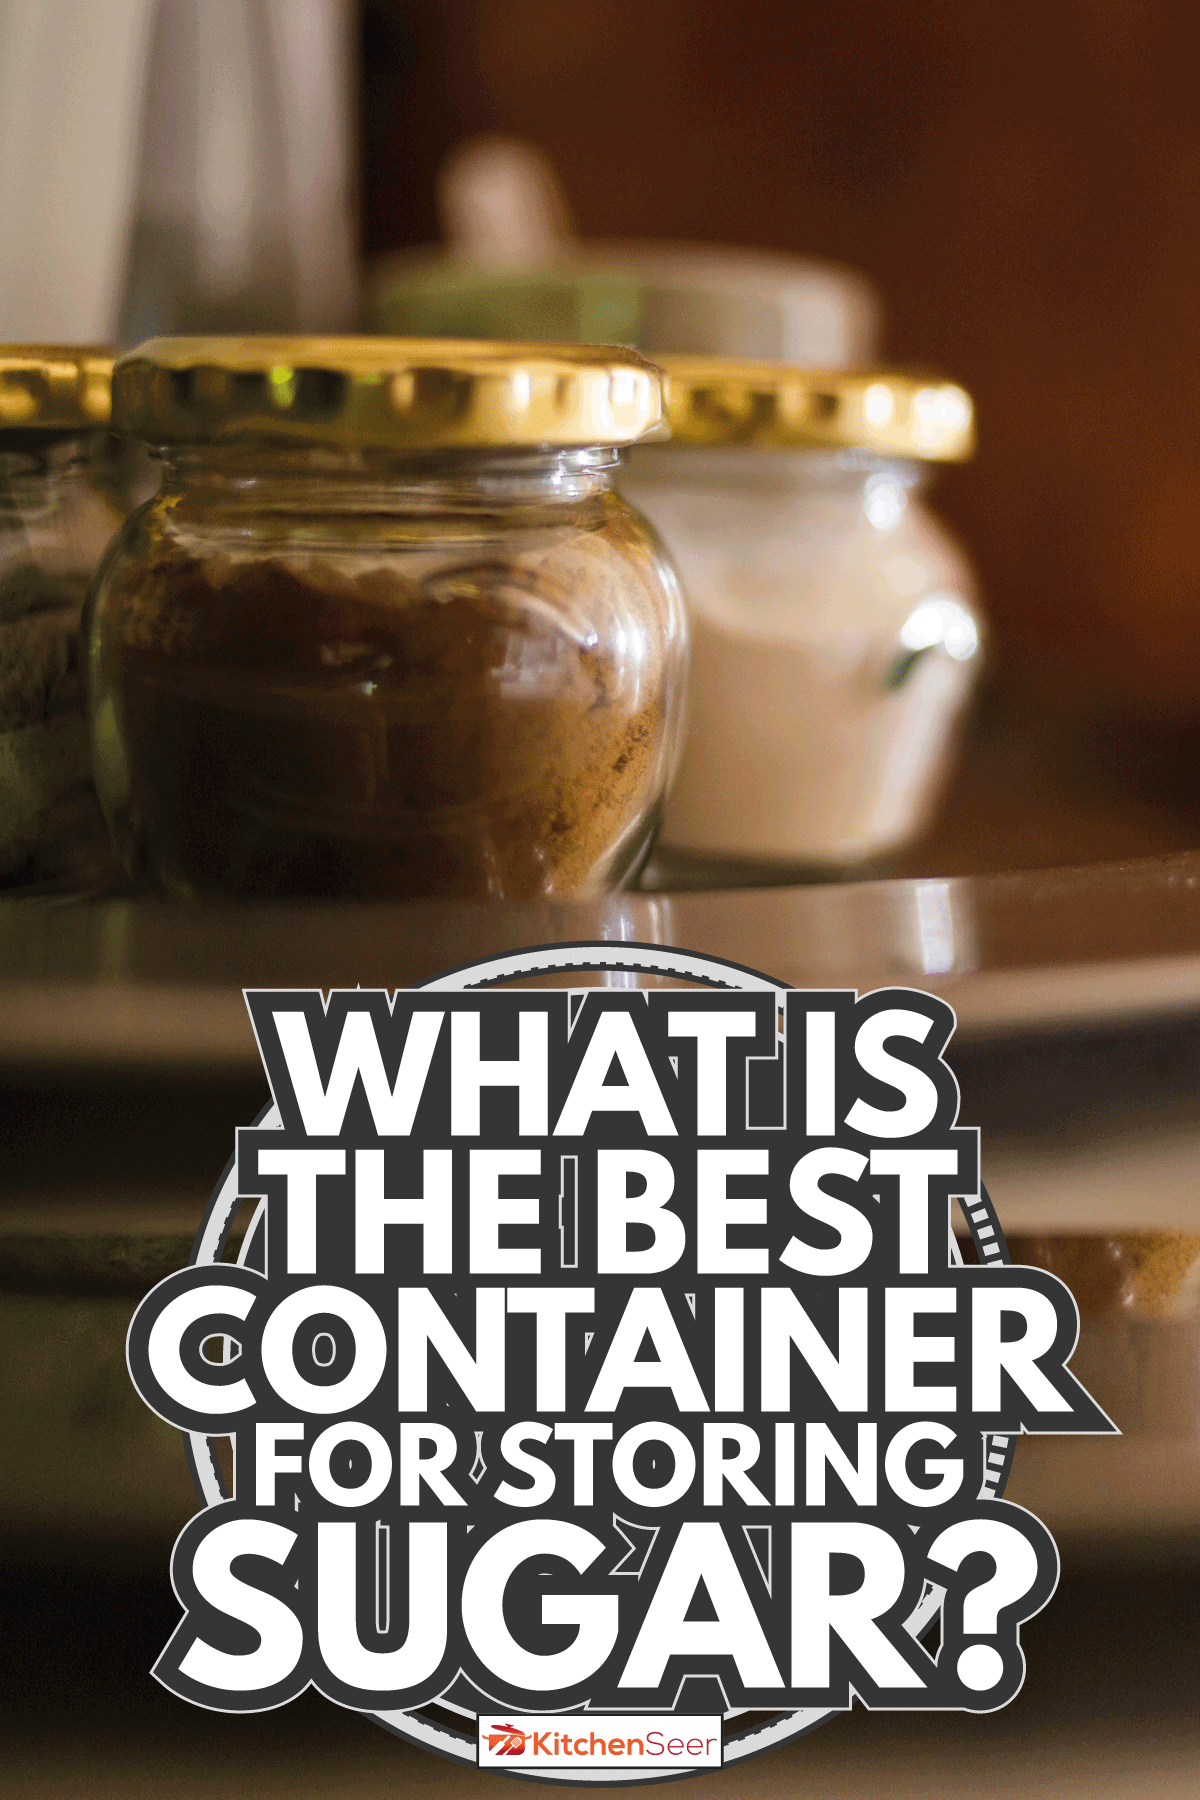 Instant coffee and Sugar jars. What Is The Best Container For Storing Sugar